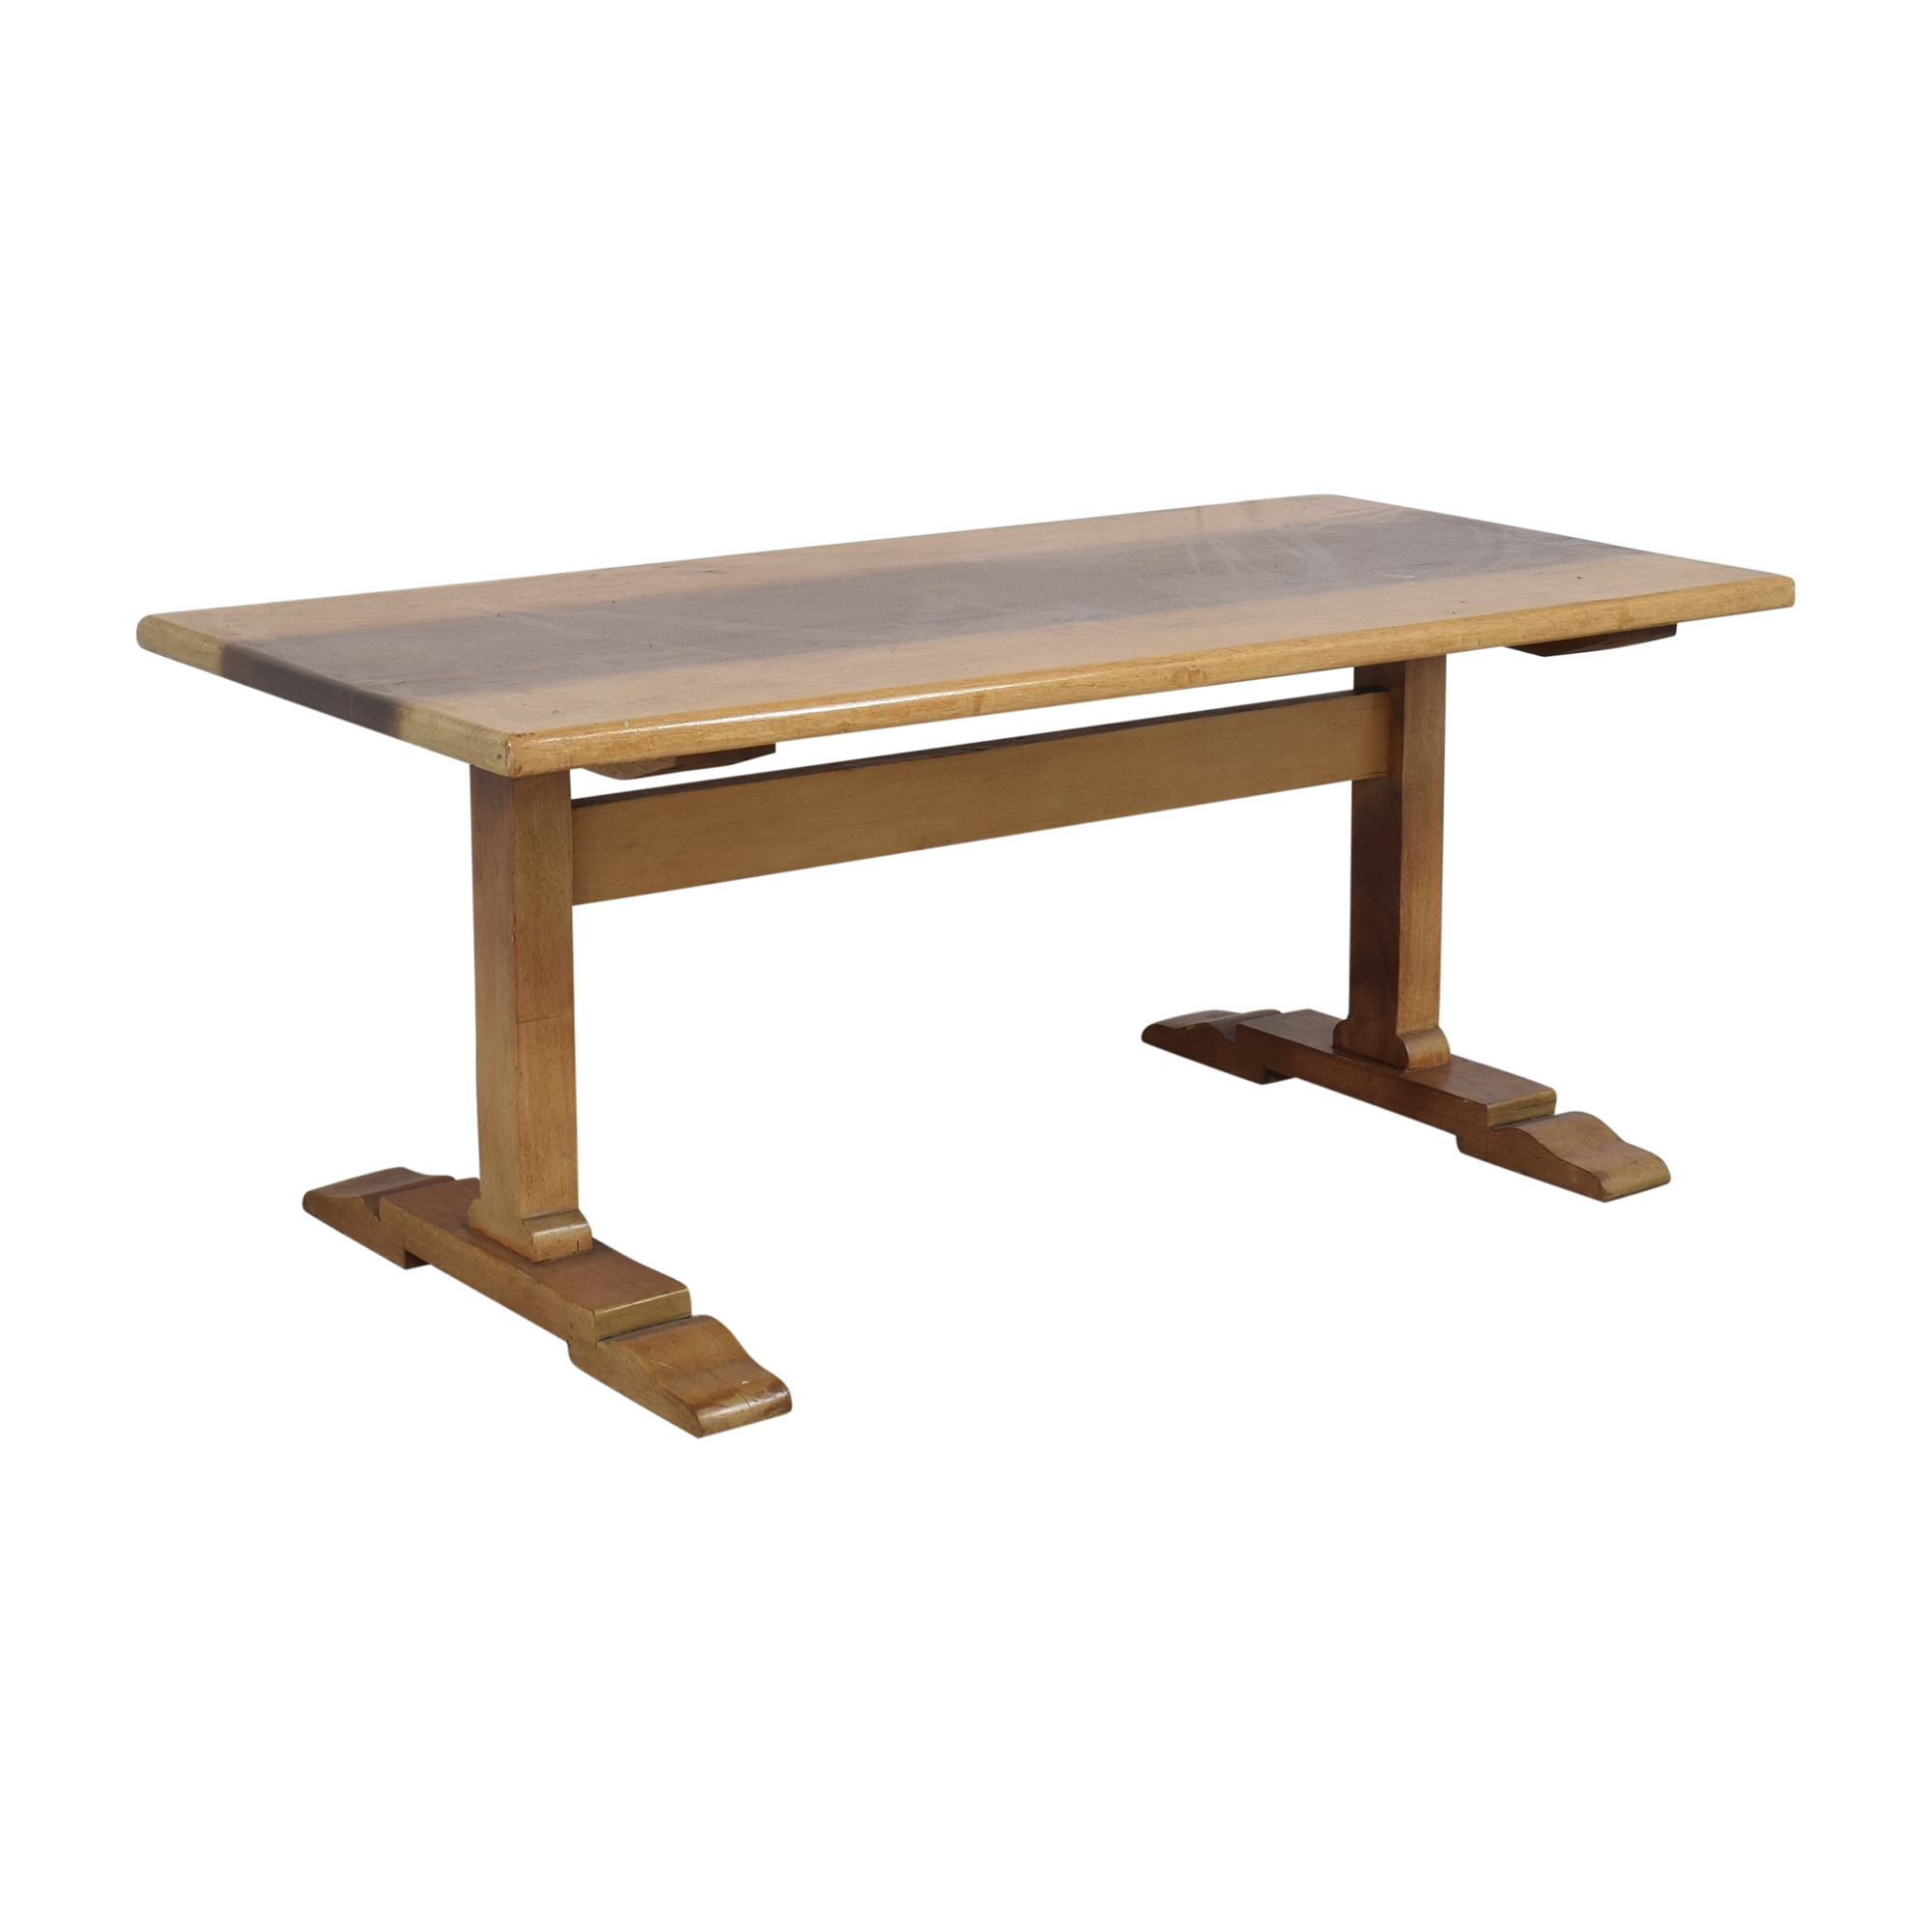 Trestle Dining Table dimensions